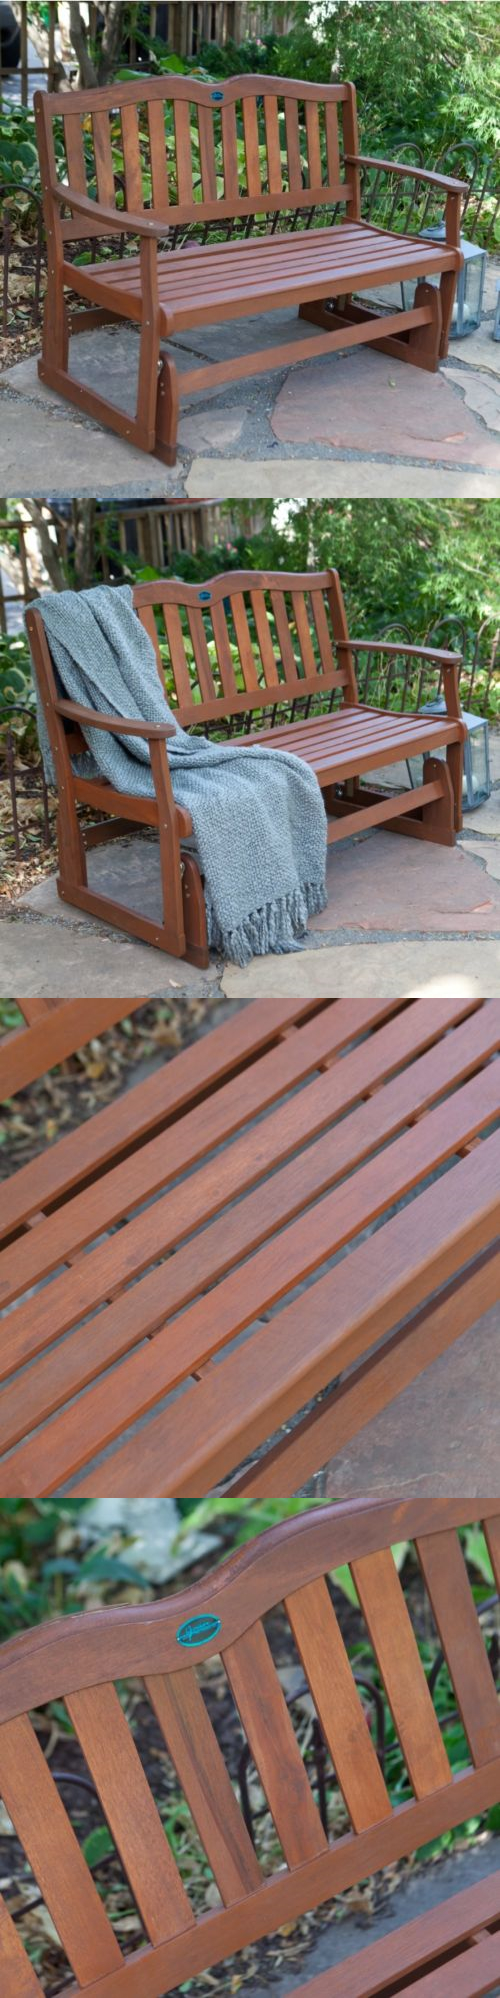 Benches front porch furniture glider loveseat outdoor patio